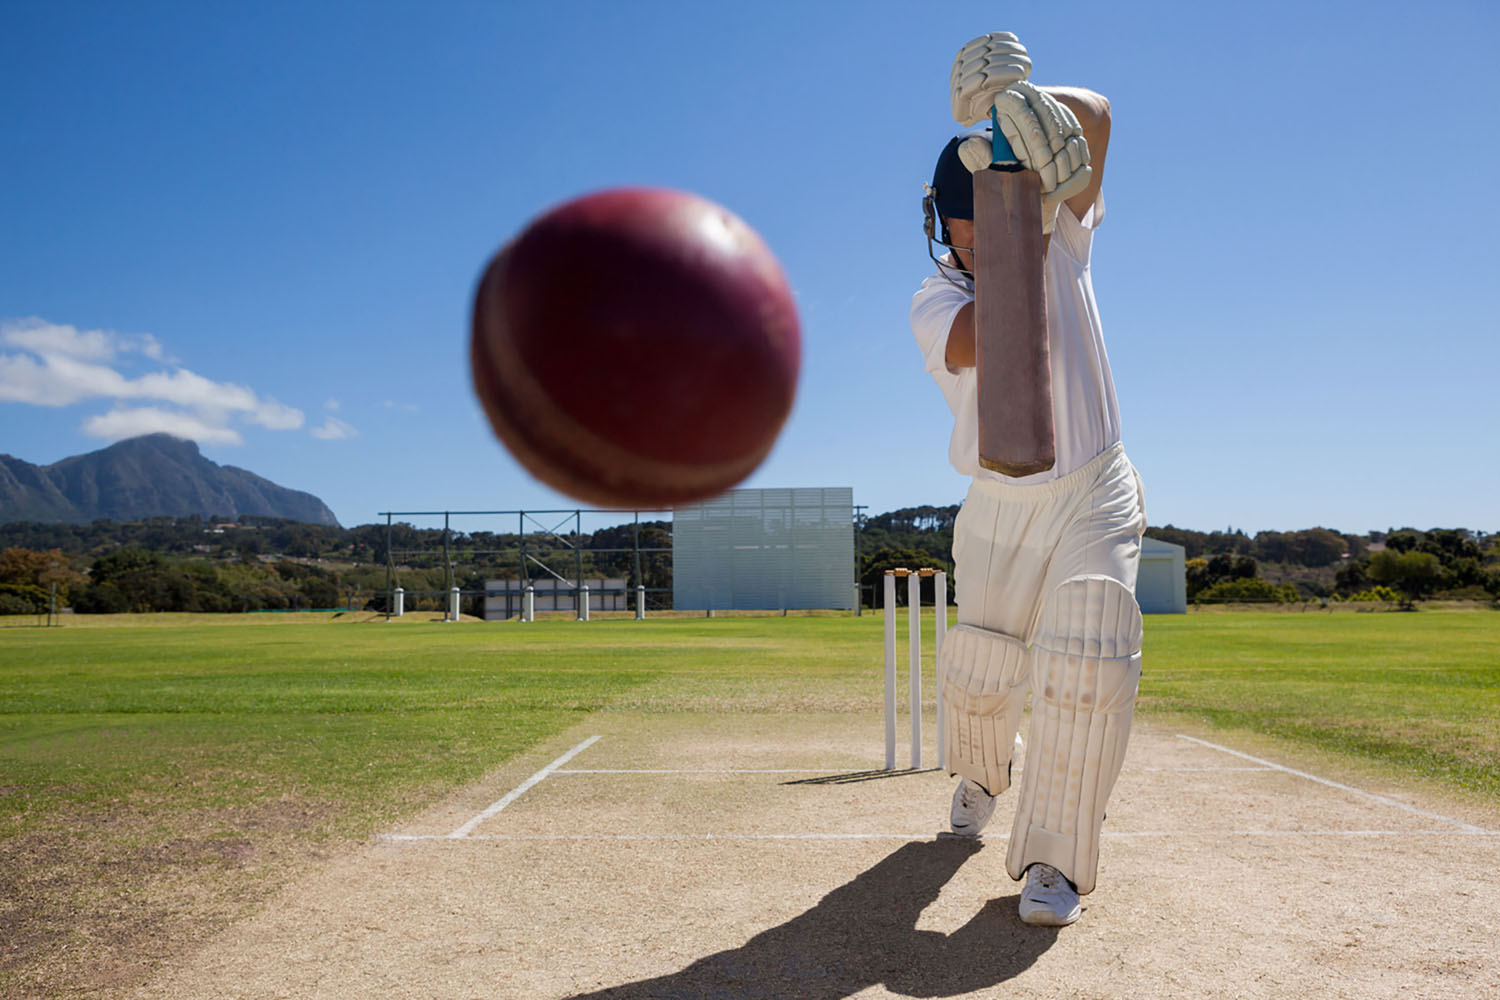 A Sports Fan's Guide to South Africa